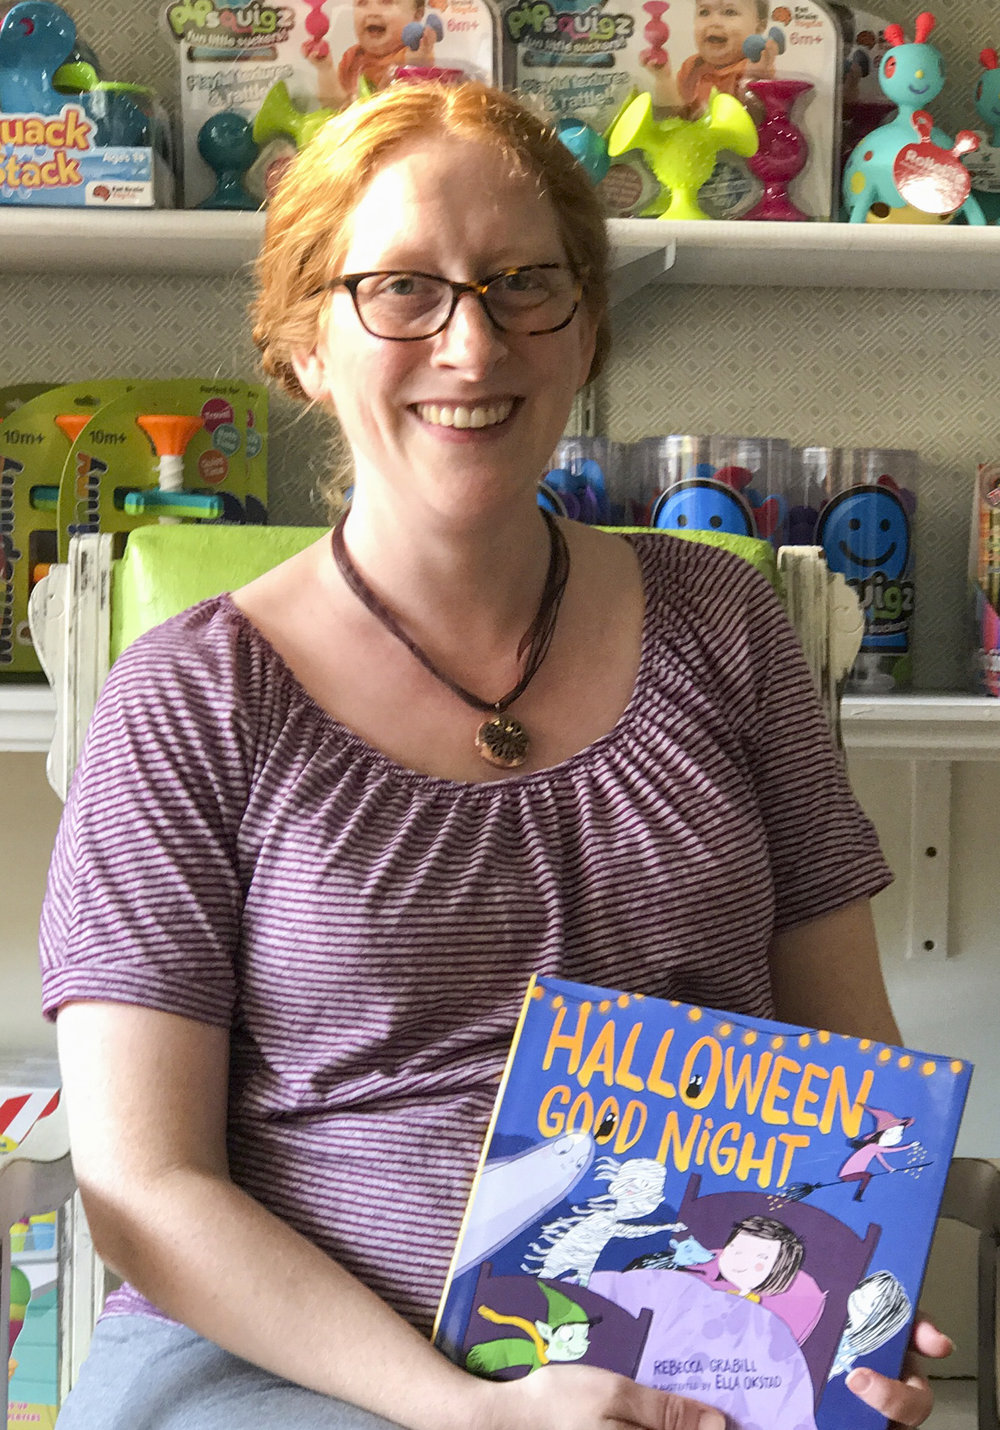 Rebecca Grabill with Halloween Good Night